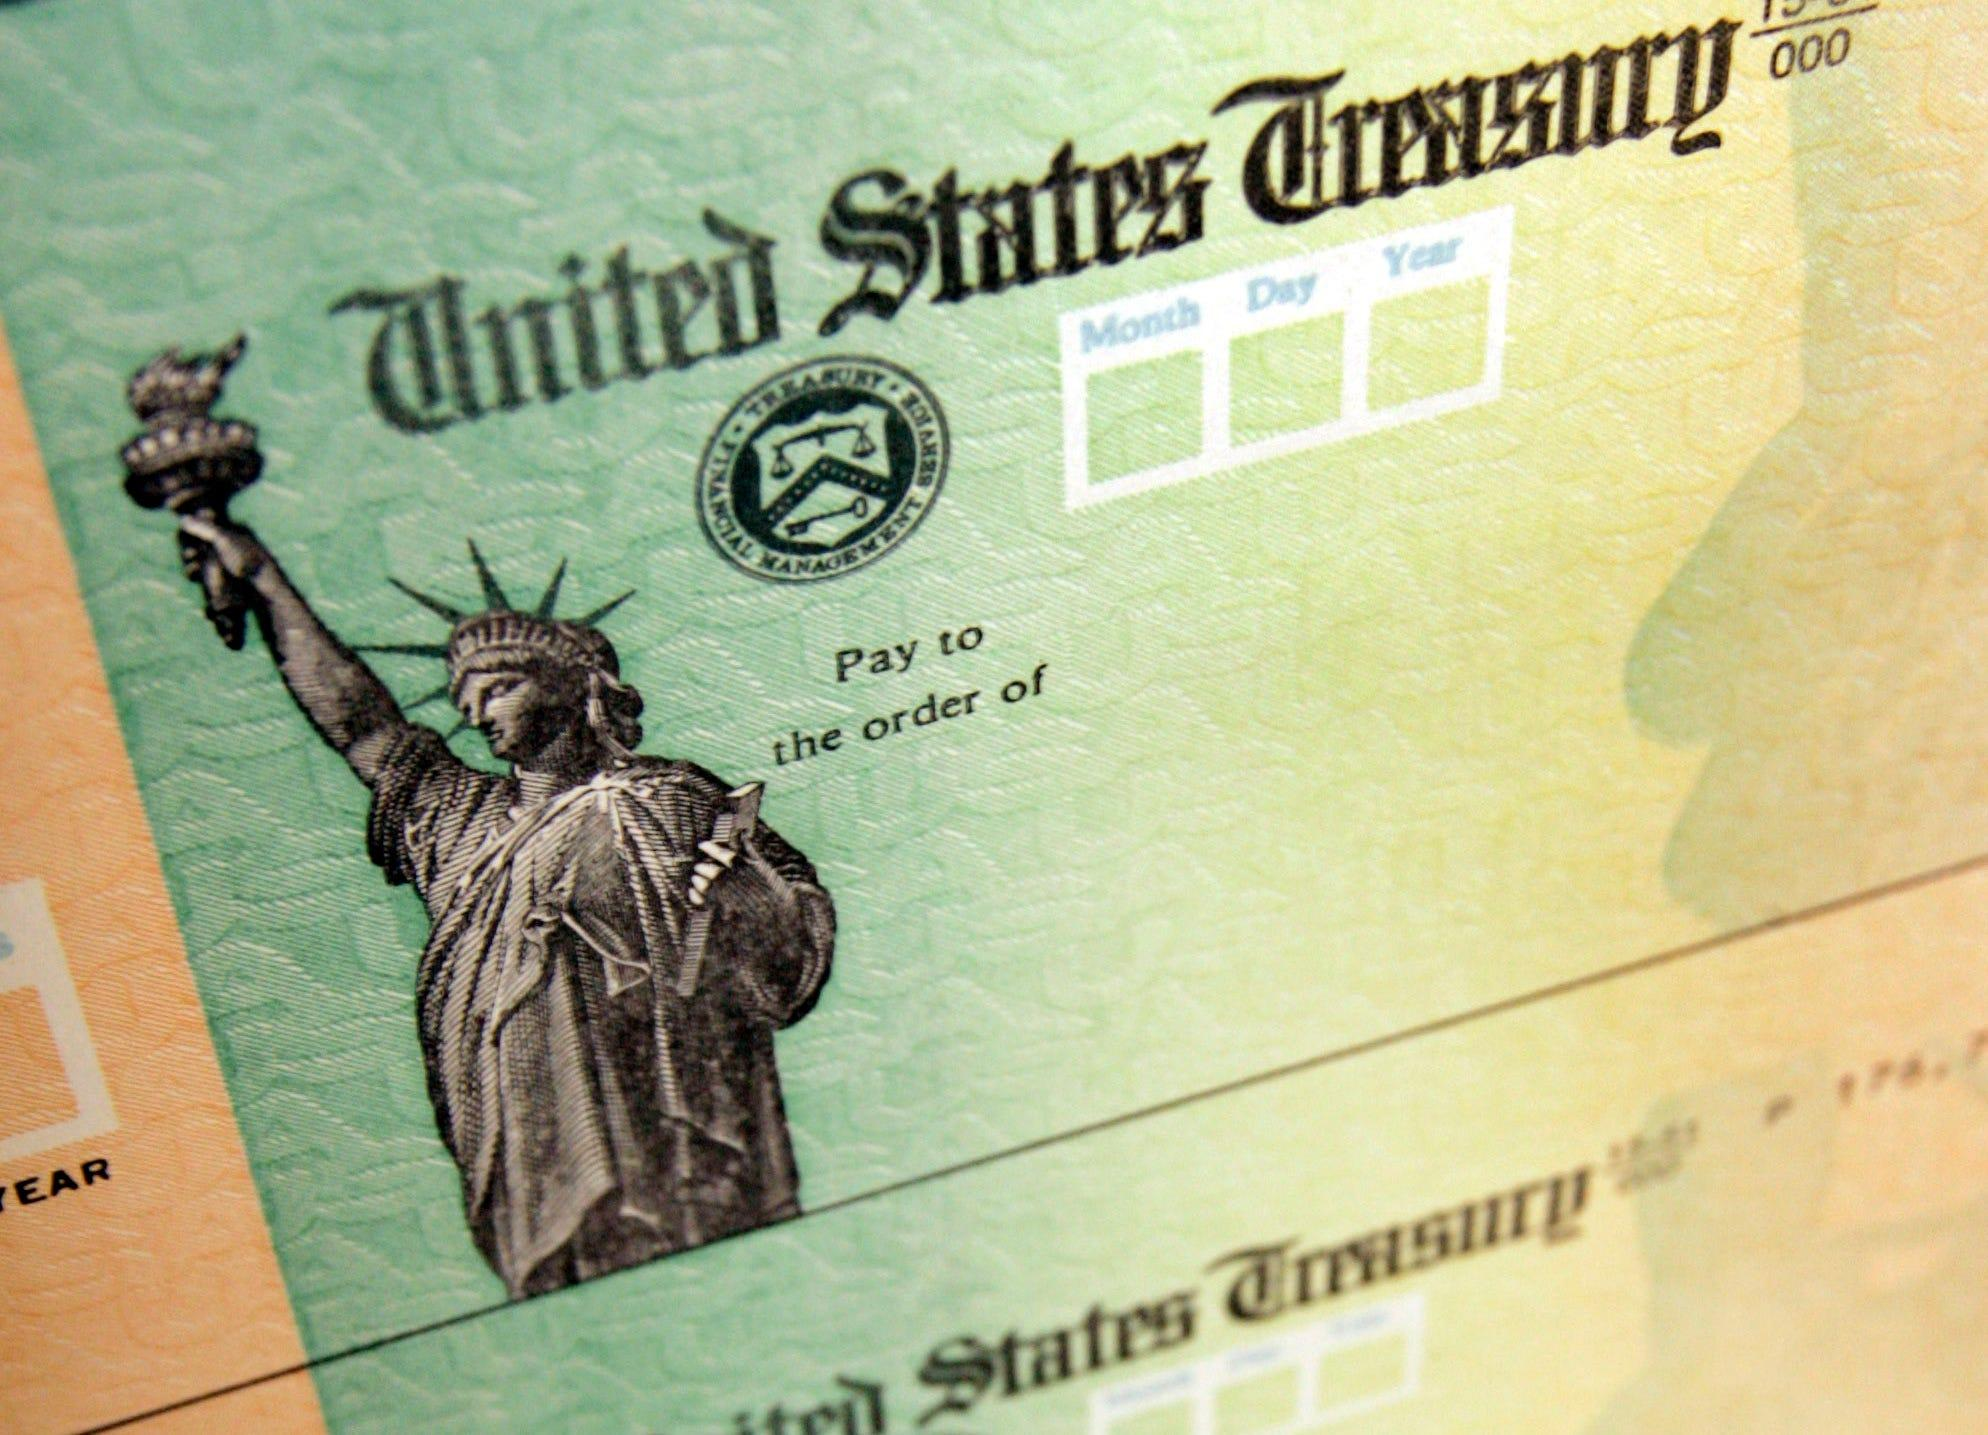 Tax refunds are being issued at a much slower rate this season after a late start.